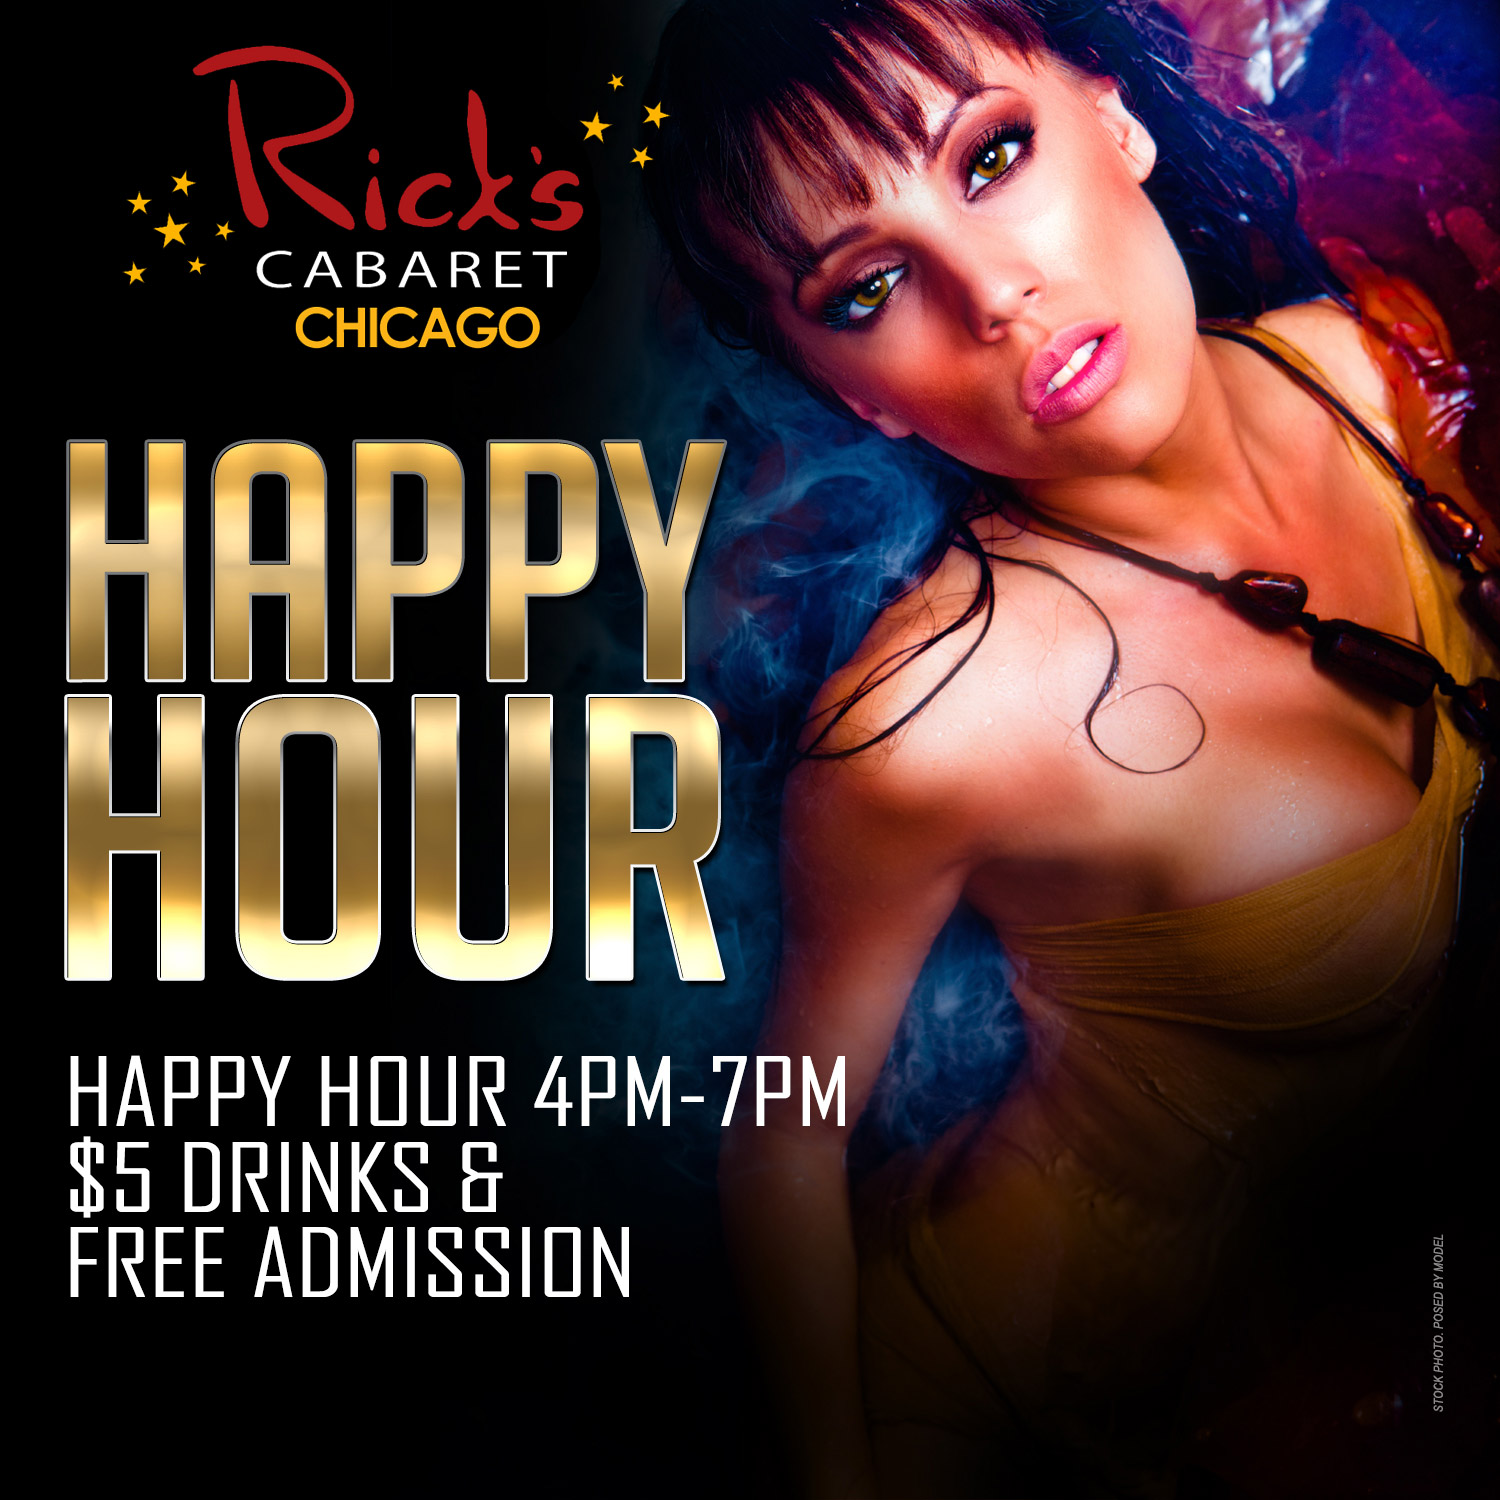 https://www.rickschicago.com/assets/events/34/HappyHour/happyhour31.jpg